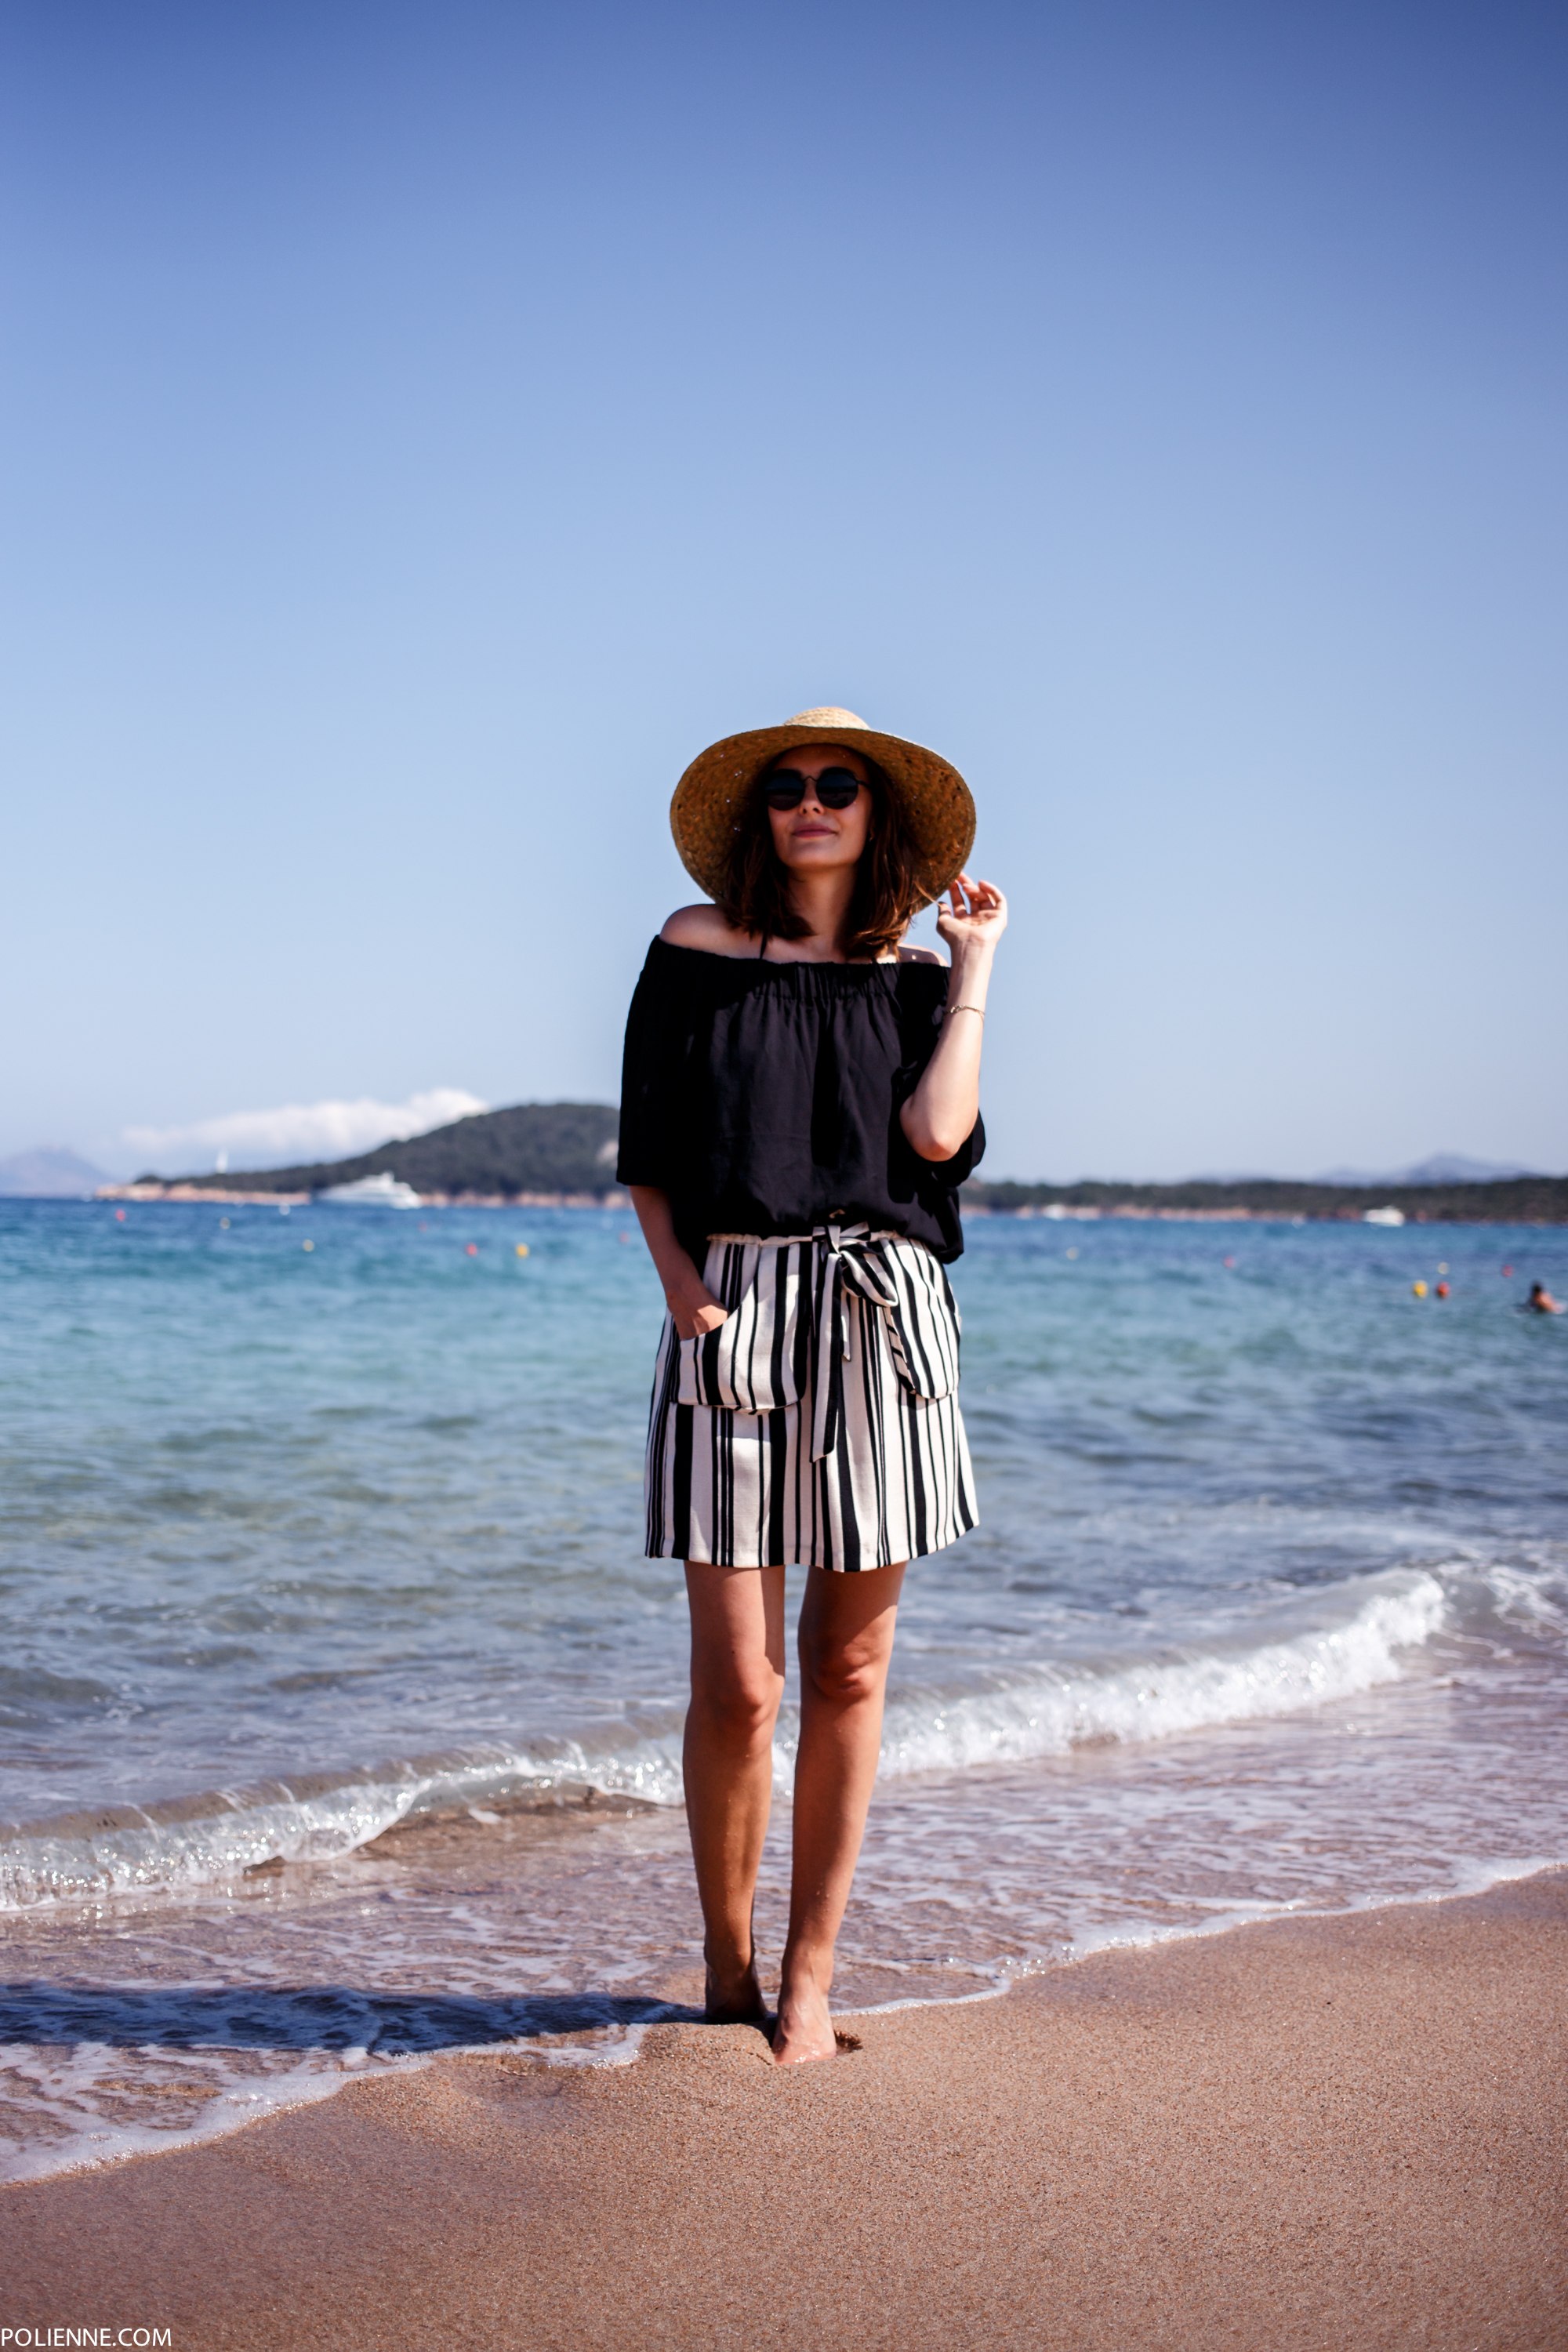 Off-the-shoulder top, yes, vertically striped skirt, yes, and hat, of course. Everything you need to go to the beach. Via Paulien Riemis Top: Weekday, Skirt: Zara, Sunglasses: Le Specs, Hat: Ikea